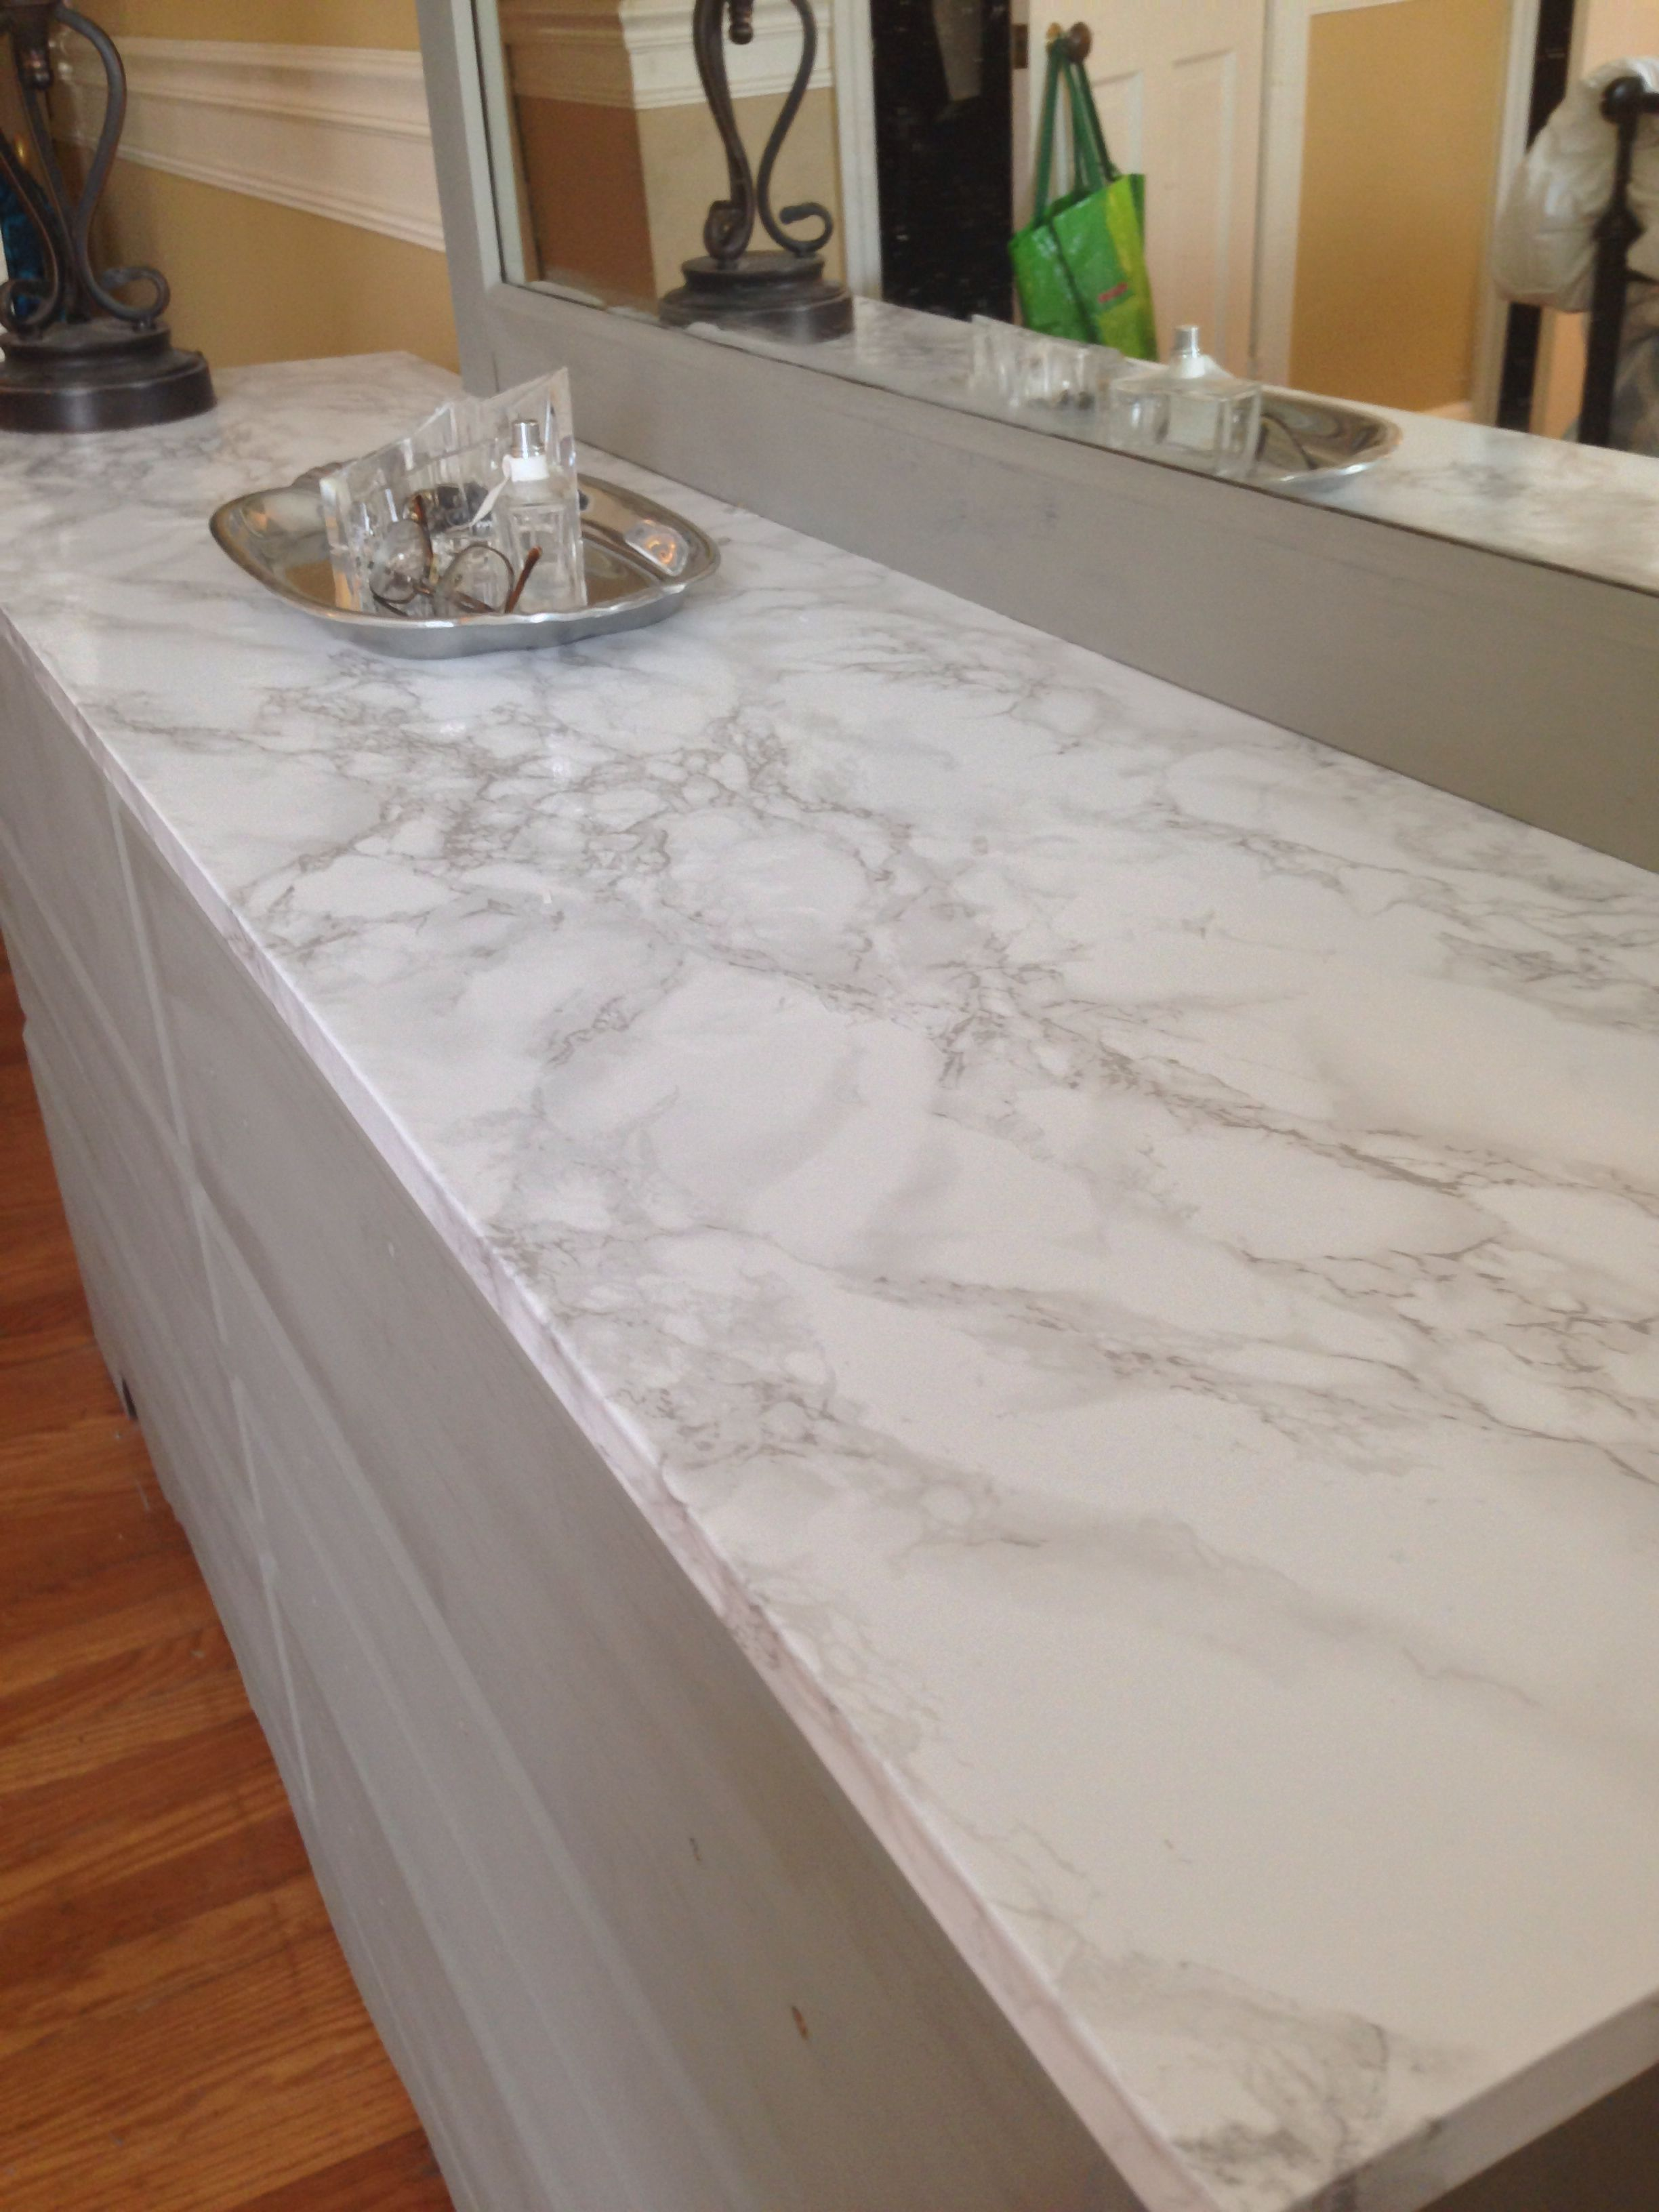 Faux Marble Contact Paper Covers Damaged Dresser Top Looks Real